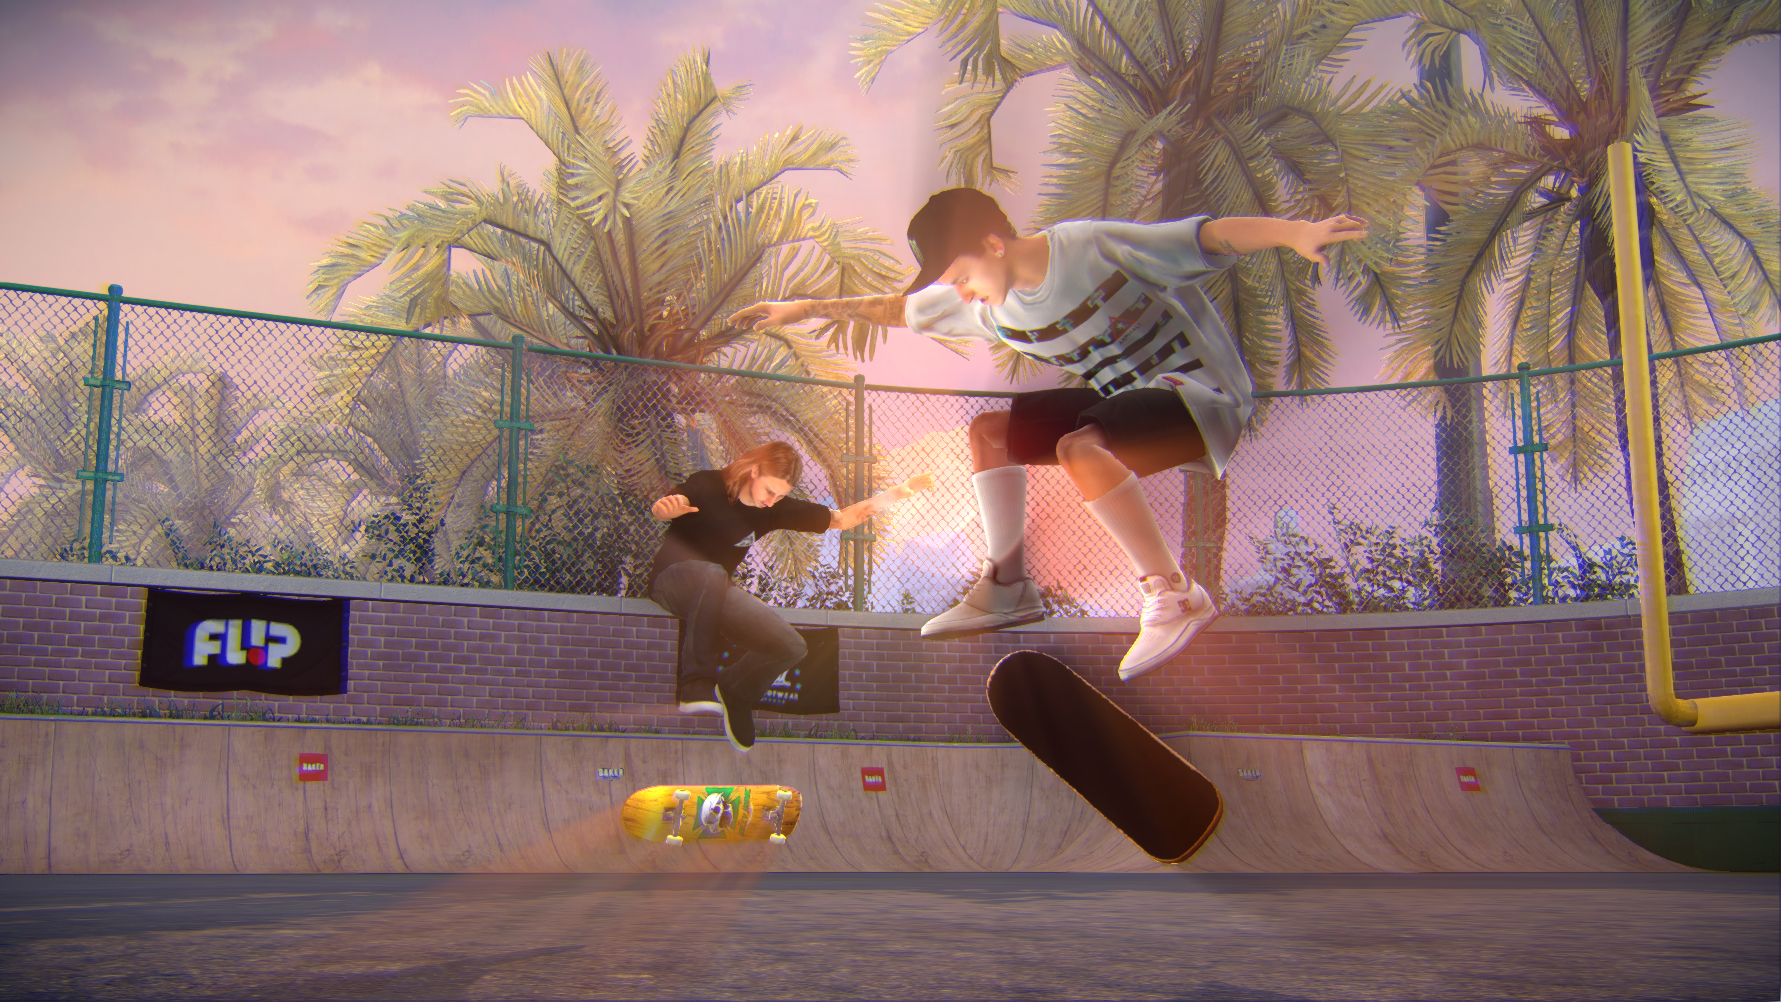 The First Gameplay Trailer For Tony Hawk's Pro Skater 5 Is Finally Here